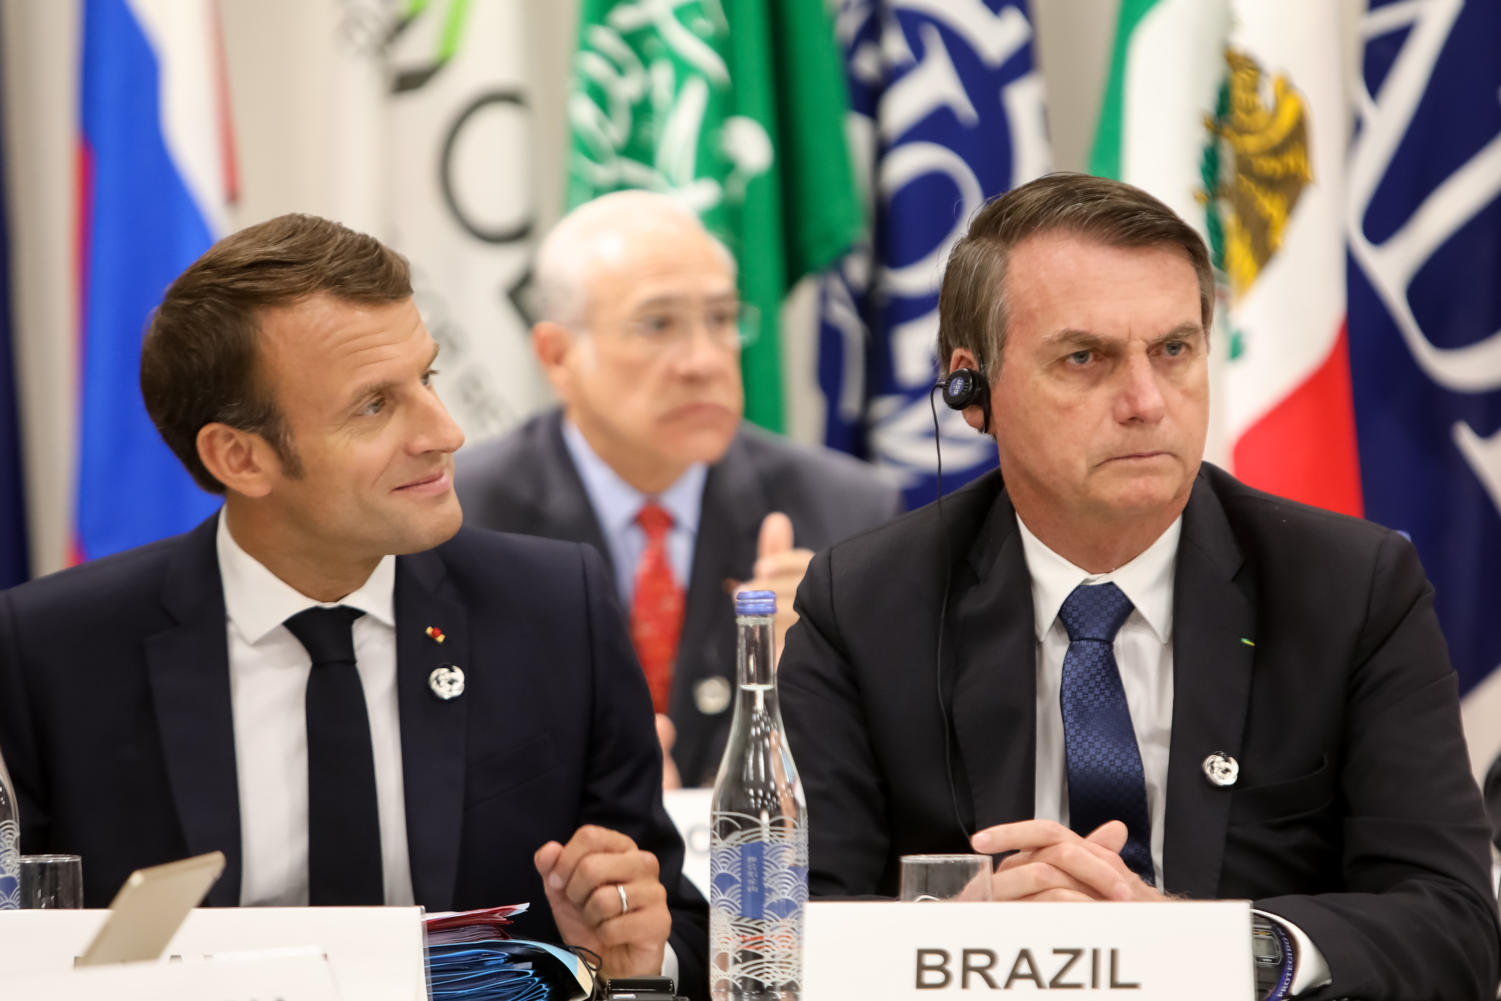 French President Emmanuel Macron (left) and Brazil President Jair Bolonsaro (right) at the G20 summit.